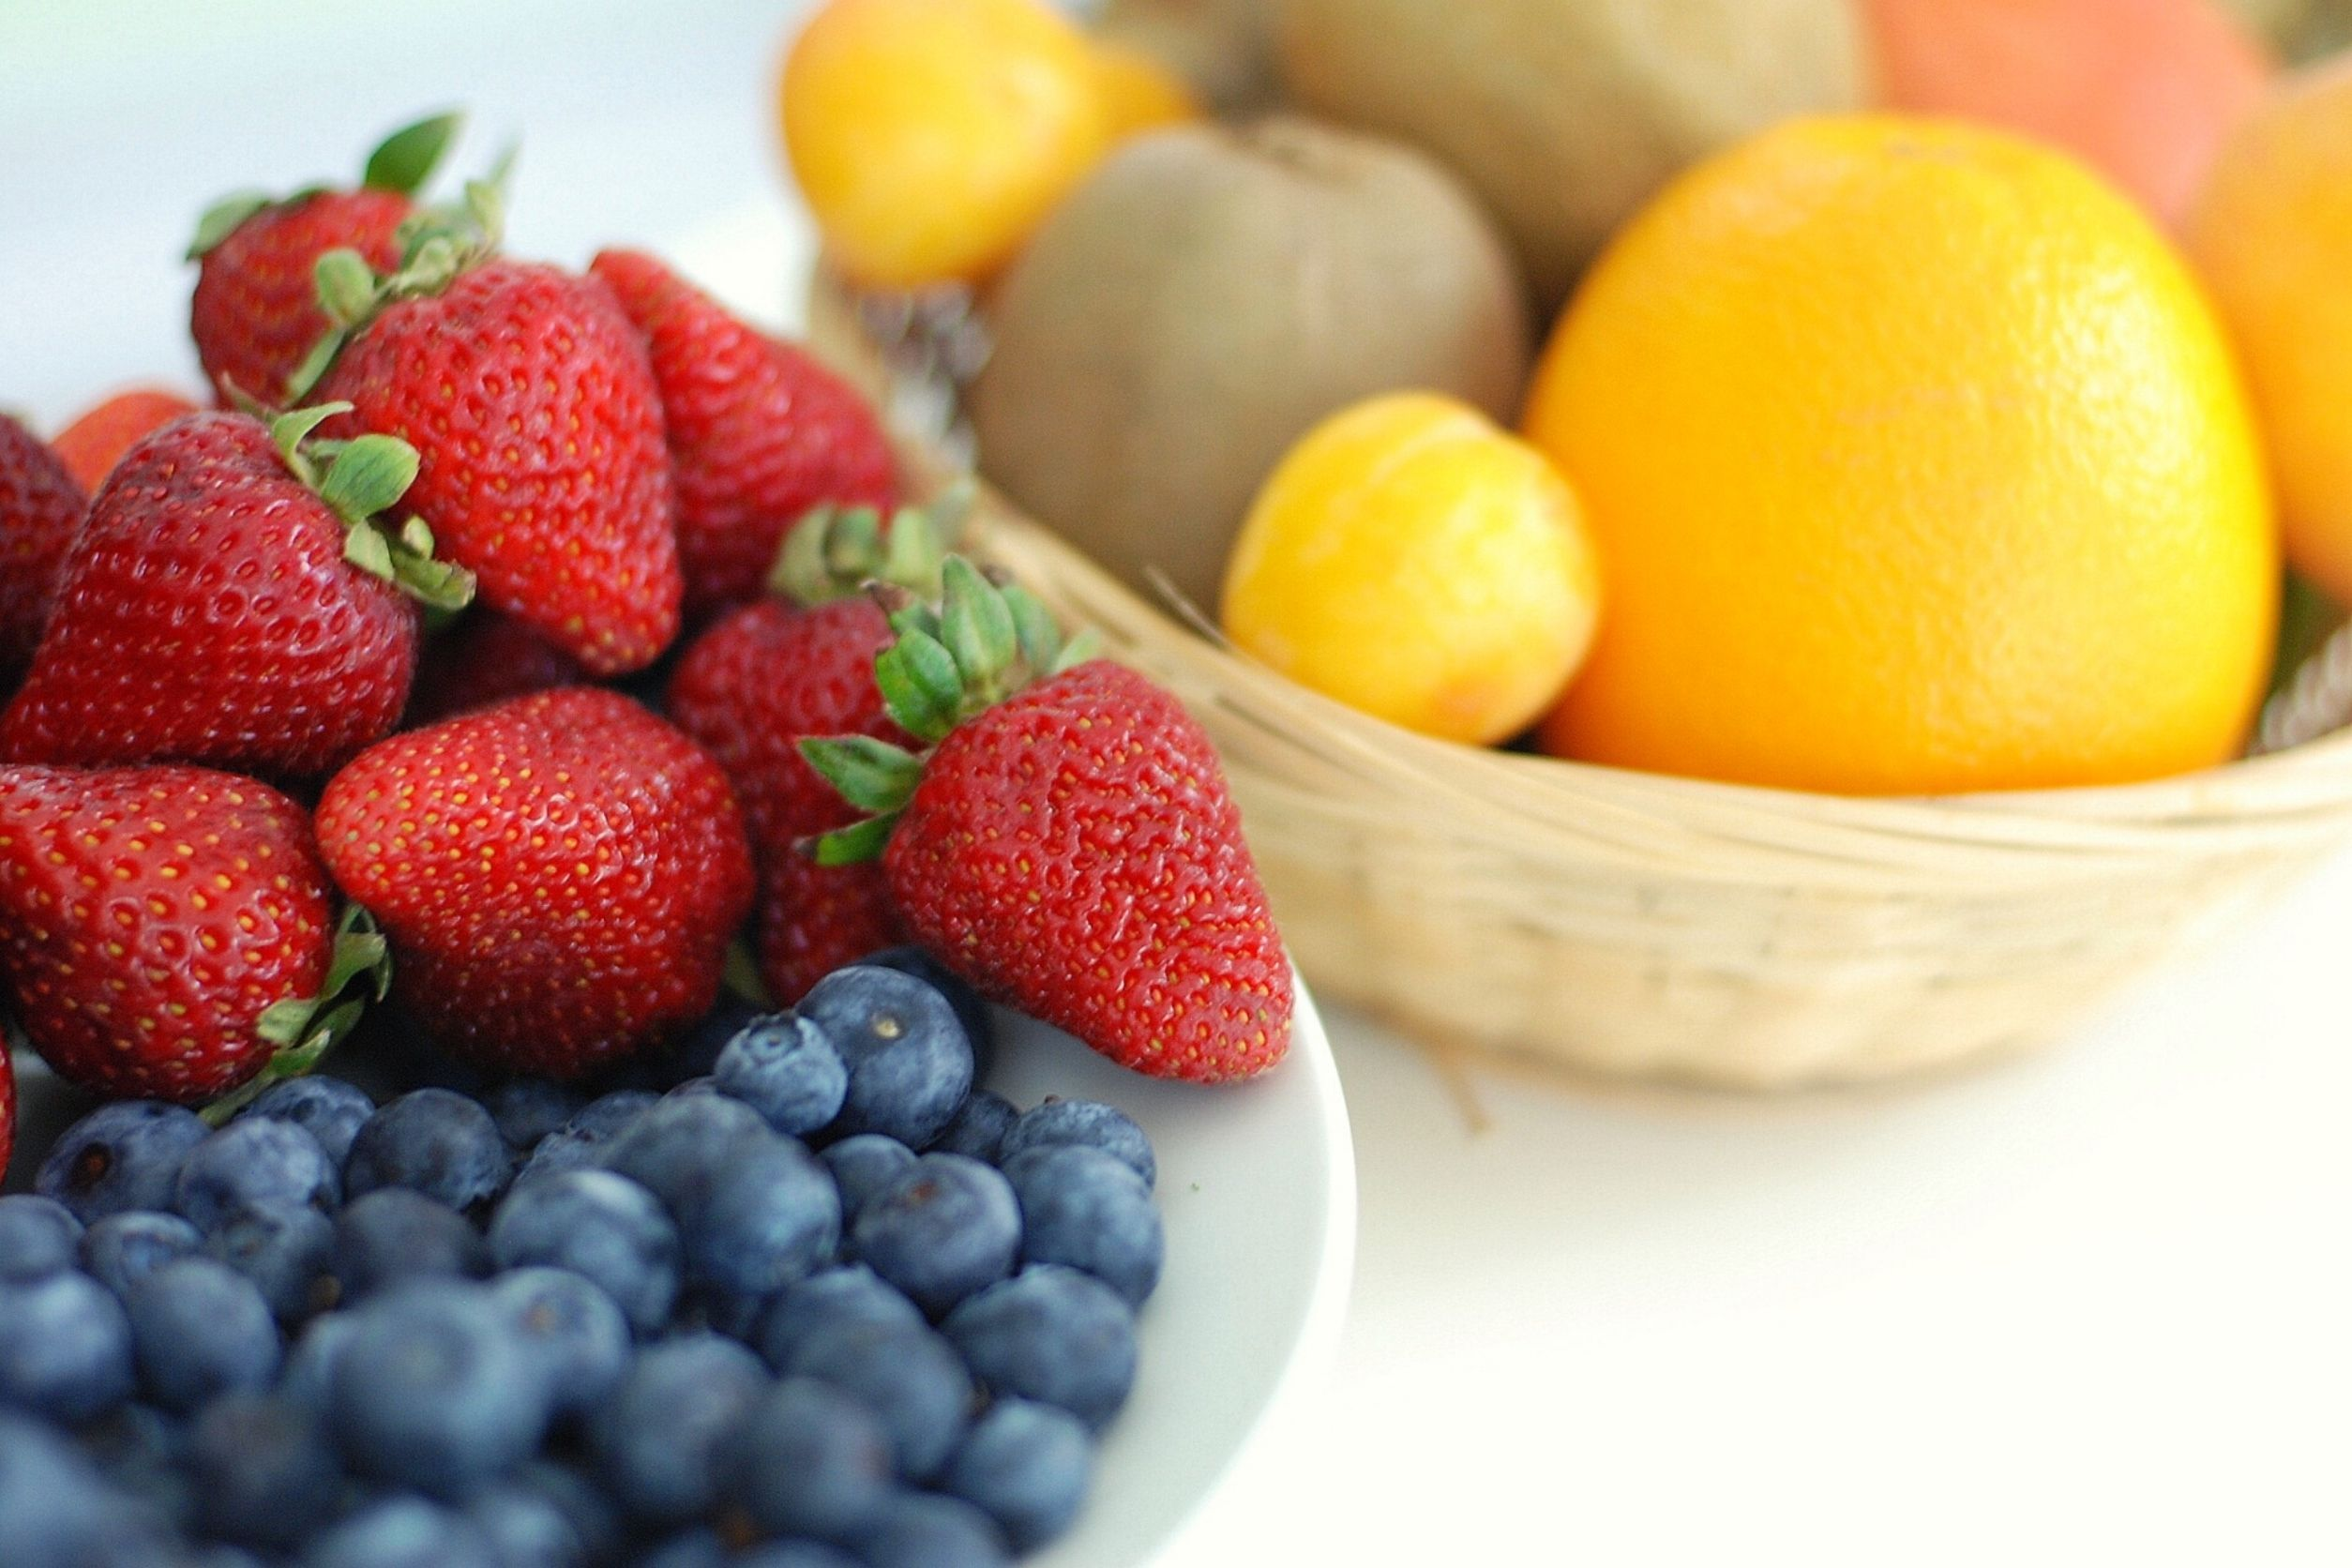 strawberries, berries, oranges, kiwis are good fruits for diabetics